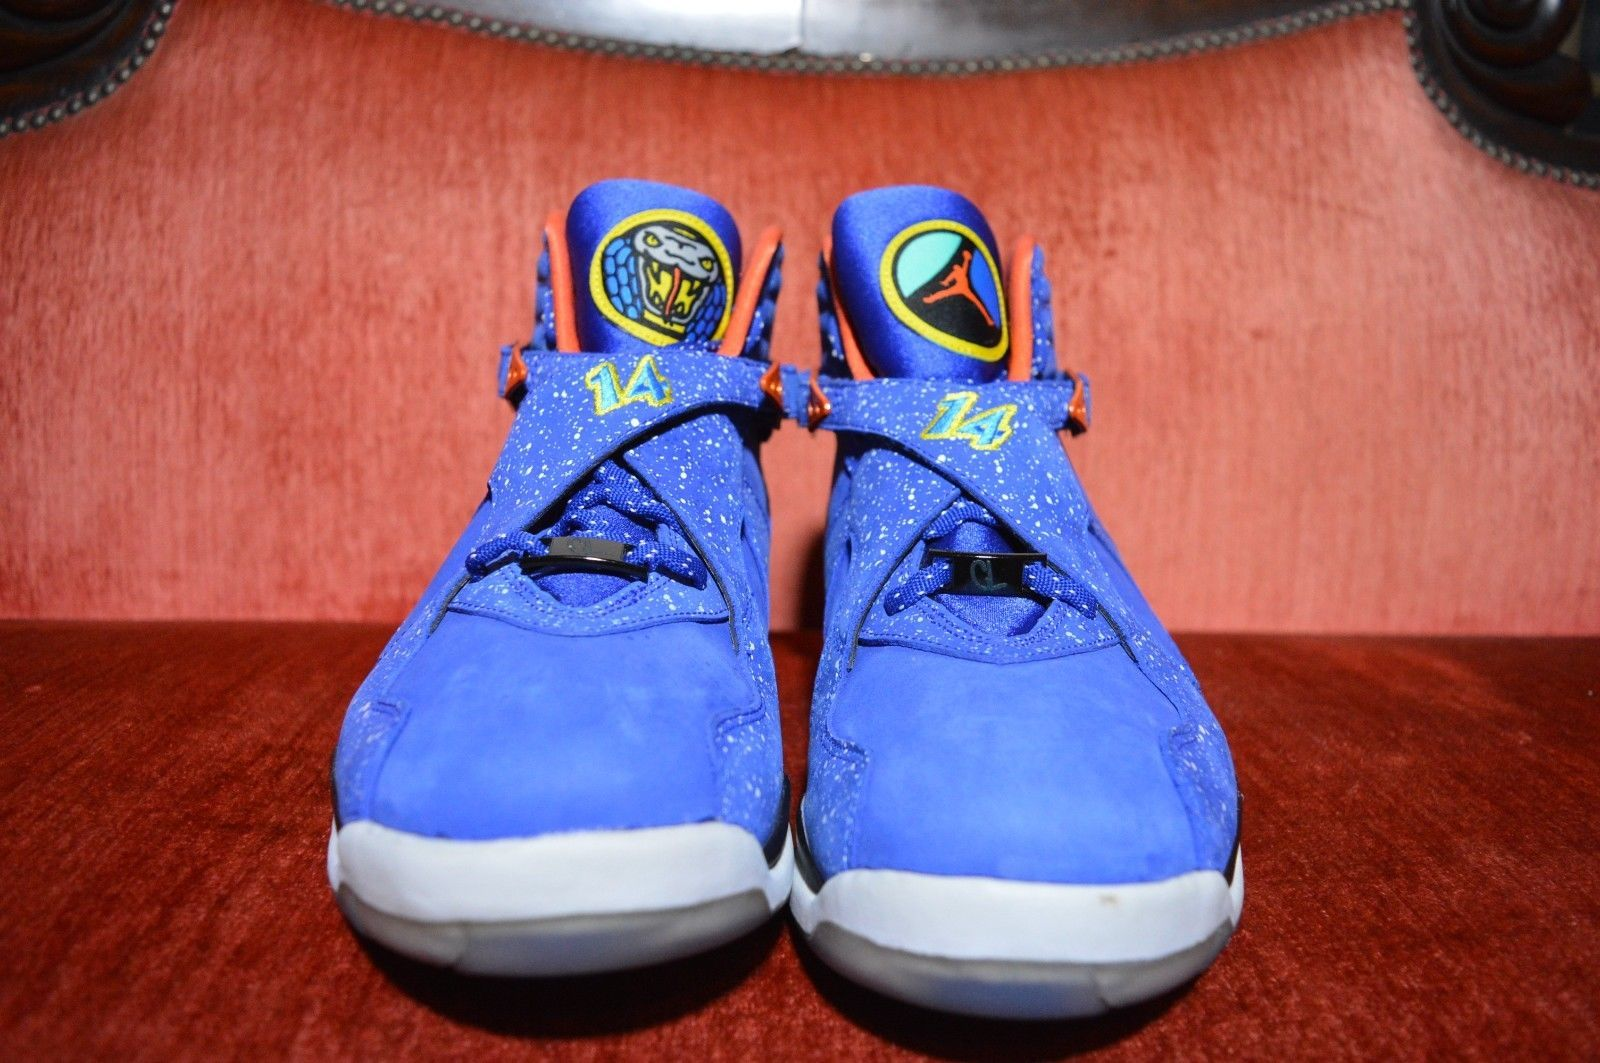 e55a7de346b CLEAN Nike Air Jordan 8 VIII Retro DB Doernbecher Blue Orange 729893 480 Sz  12.5